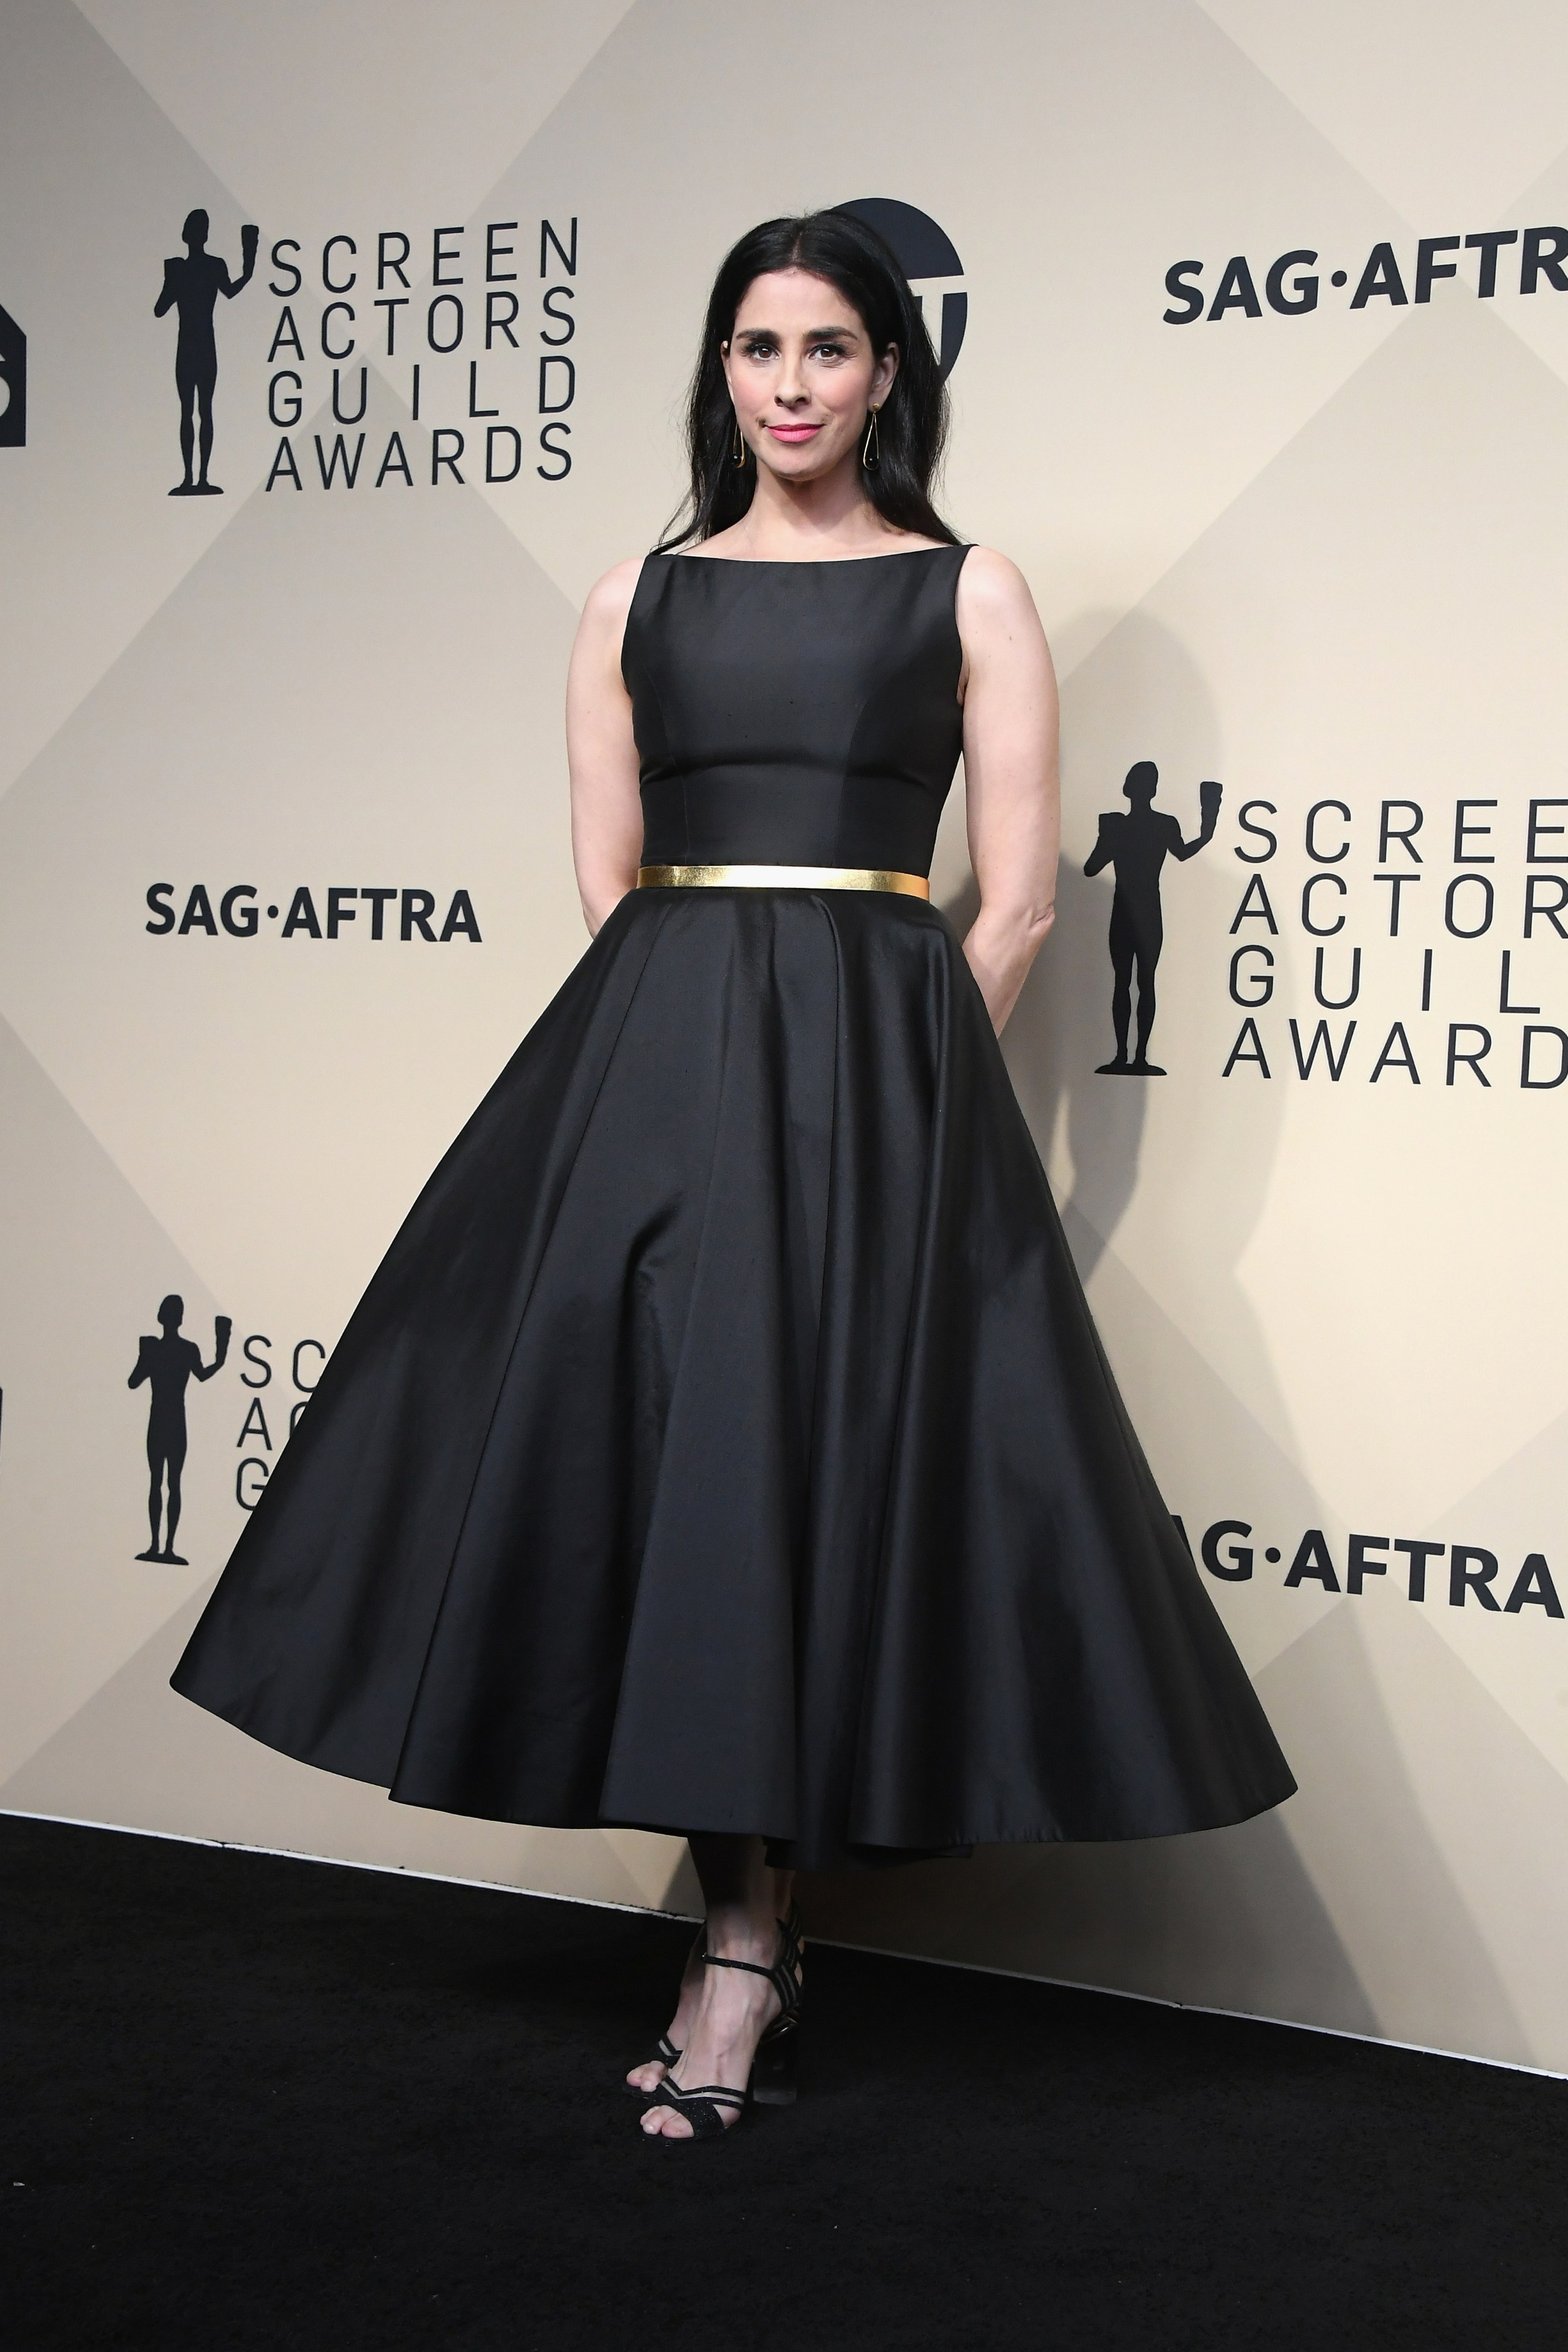 24th-annual-screen-actors-guild-awards-mary-j-blige-lupita-nyongo-others-deliver-glam-red-carpet